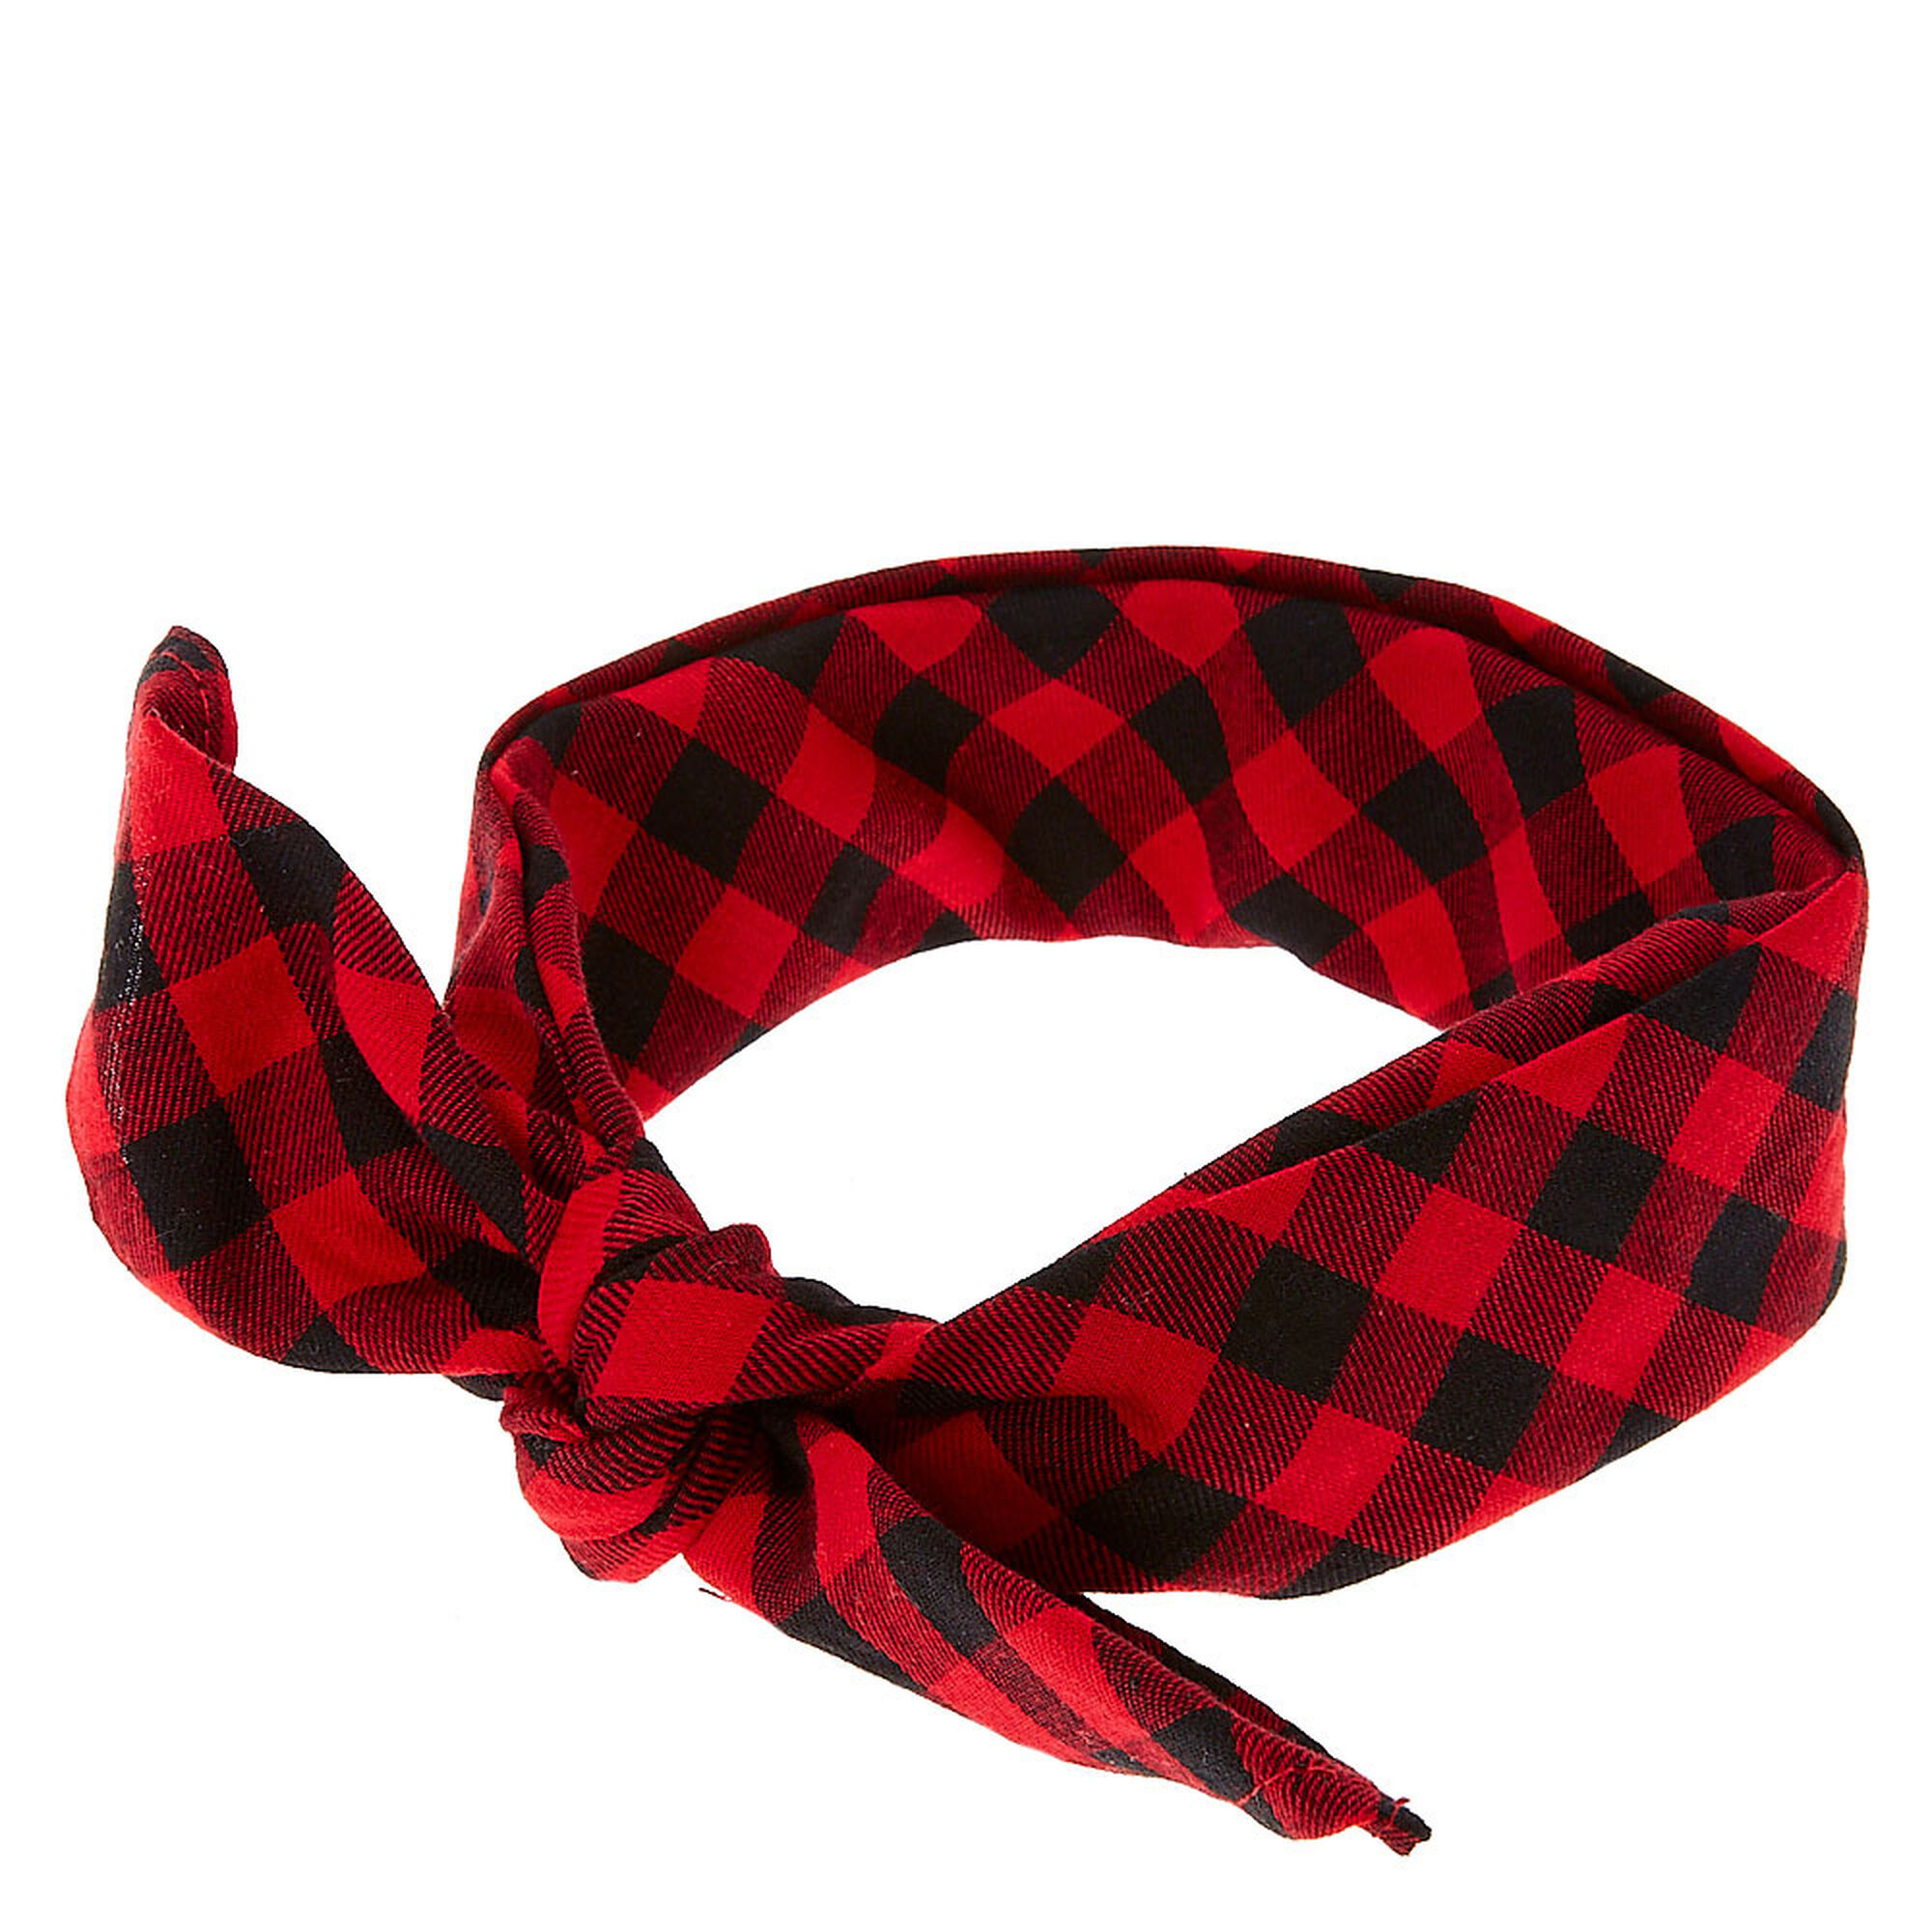 Red and Black Plaid Bandana Headwrap | Claire's